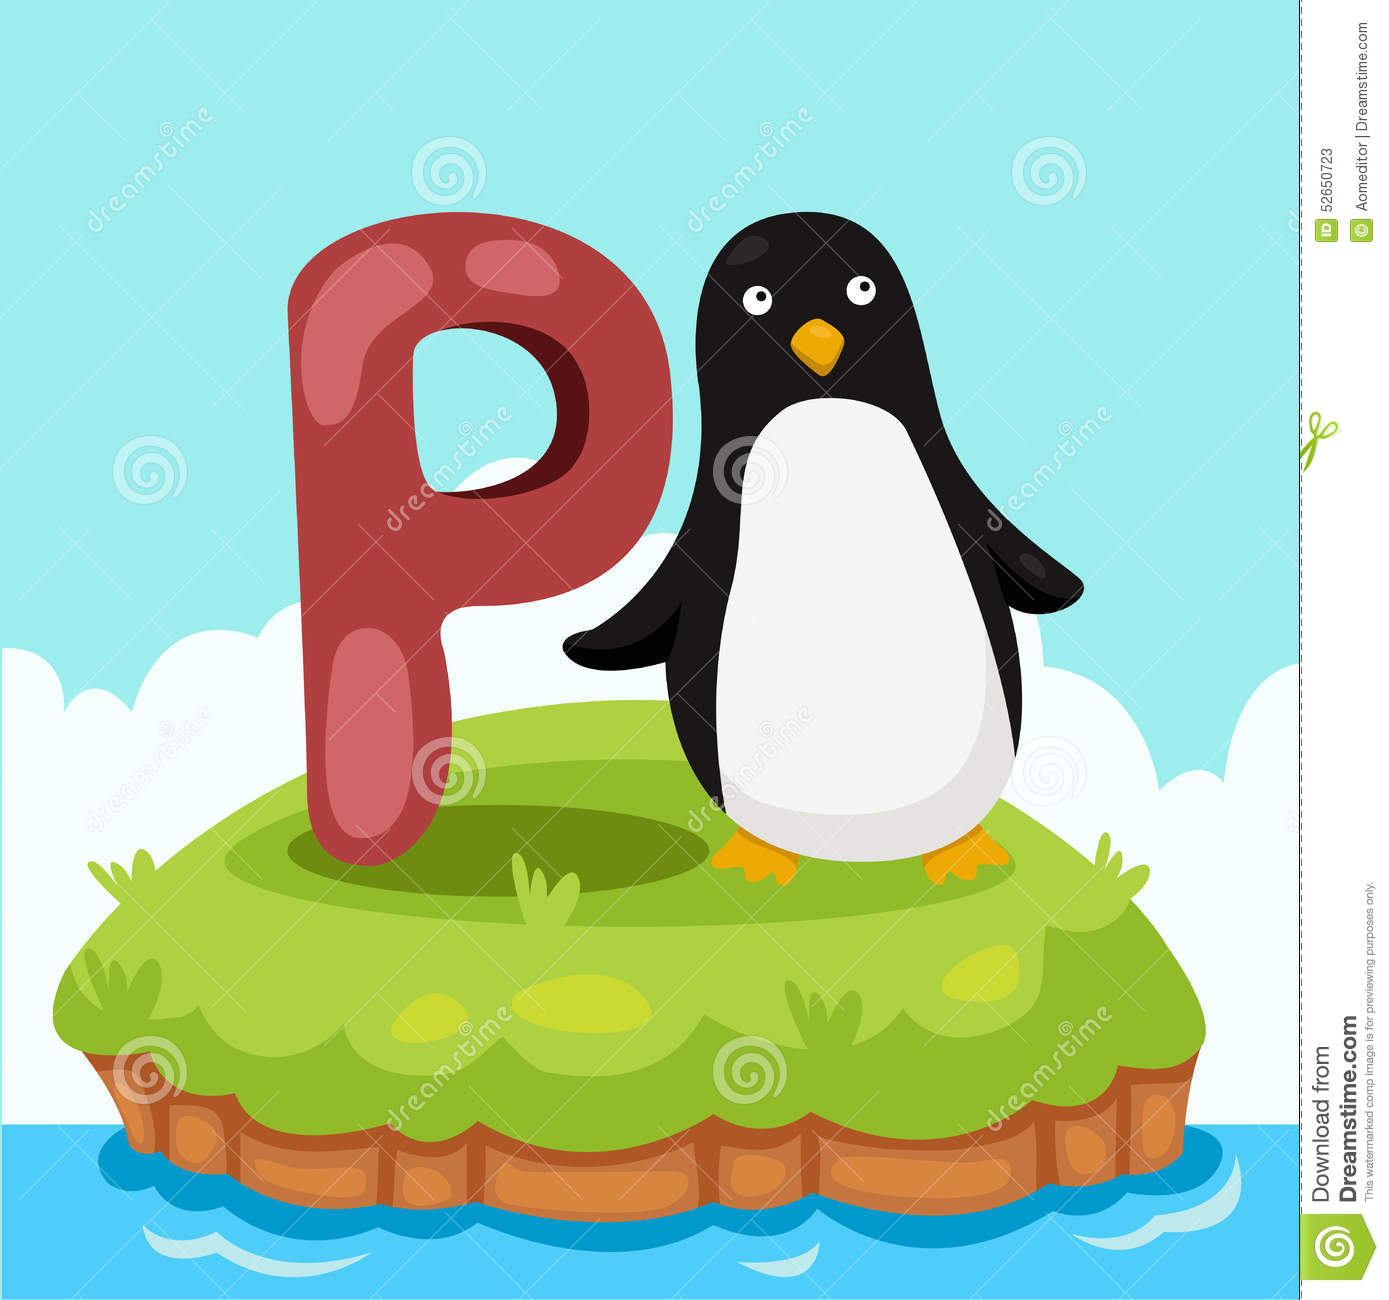 Illustrator Of Letter'P Is For Penquin' Stock Vector.